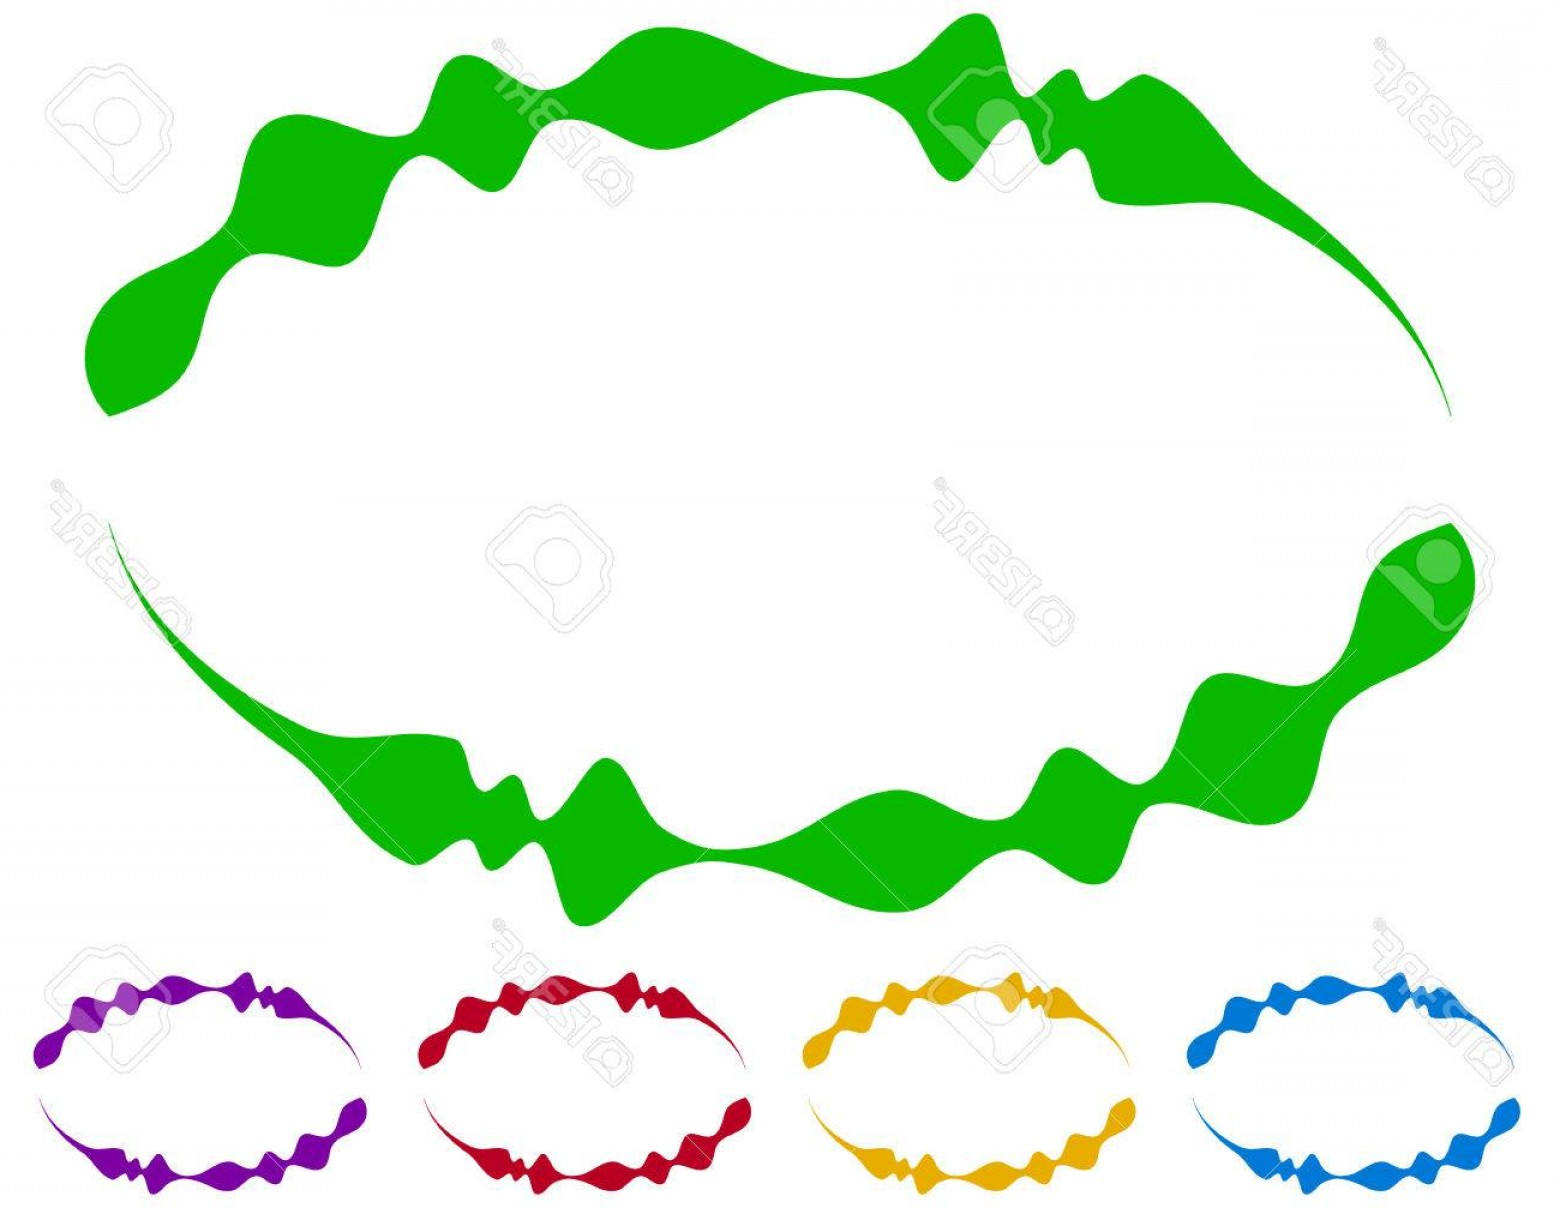 Green Oval Border Vector: Photostock Vector Oval Frames Borders In Five Colors Colorful Design Elements